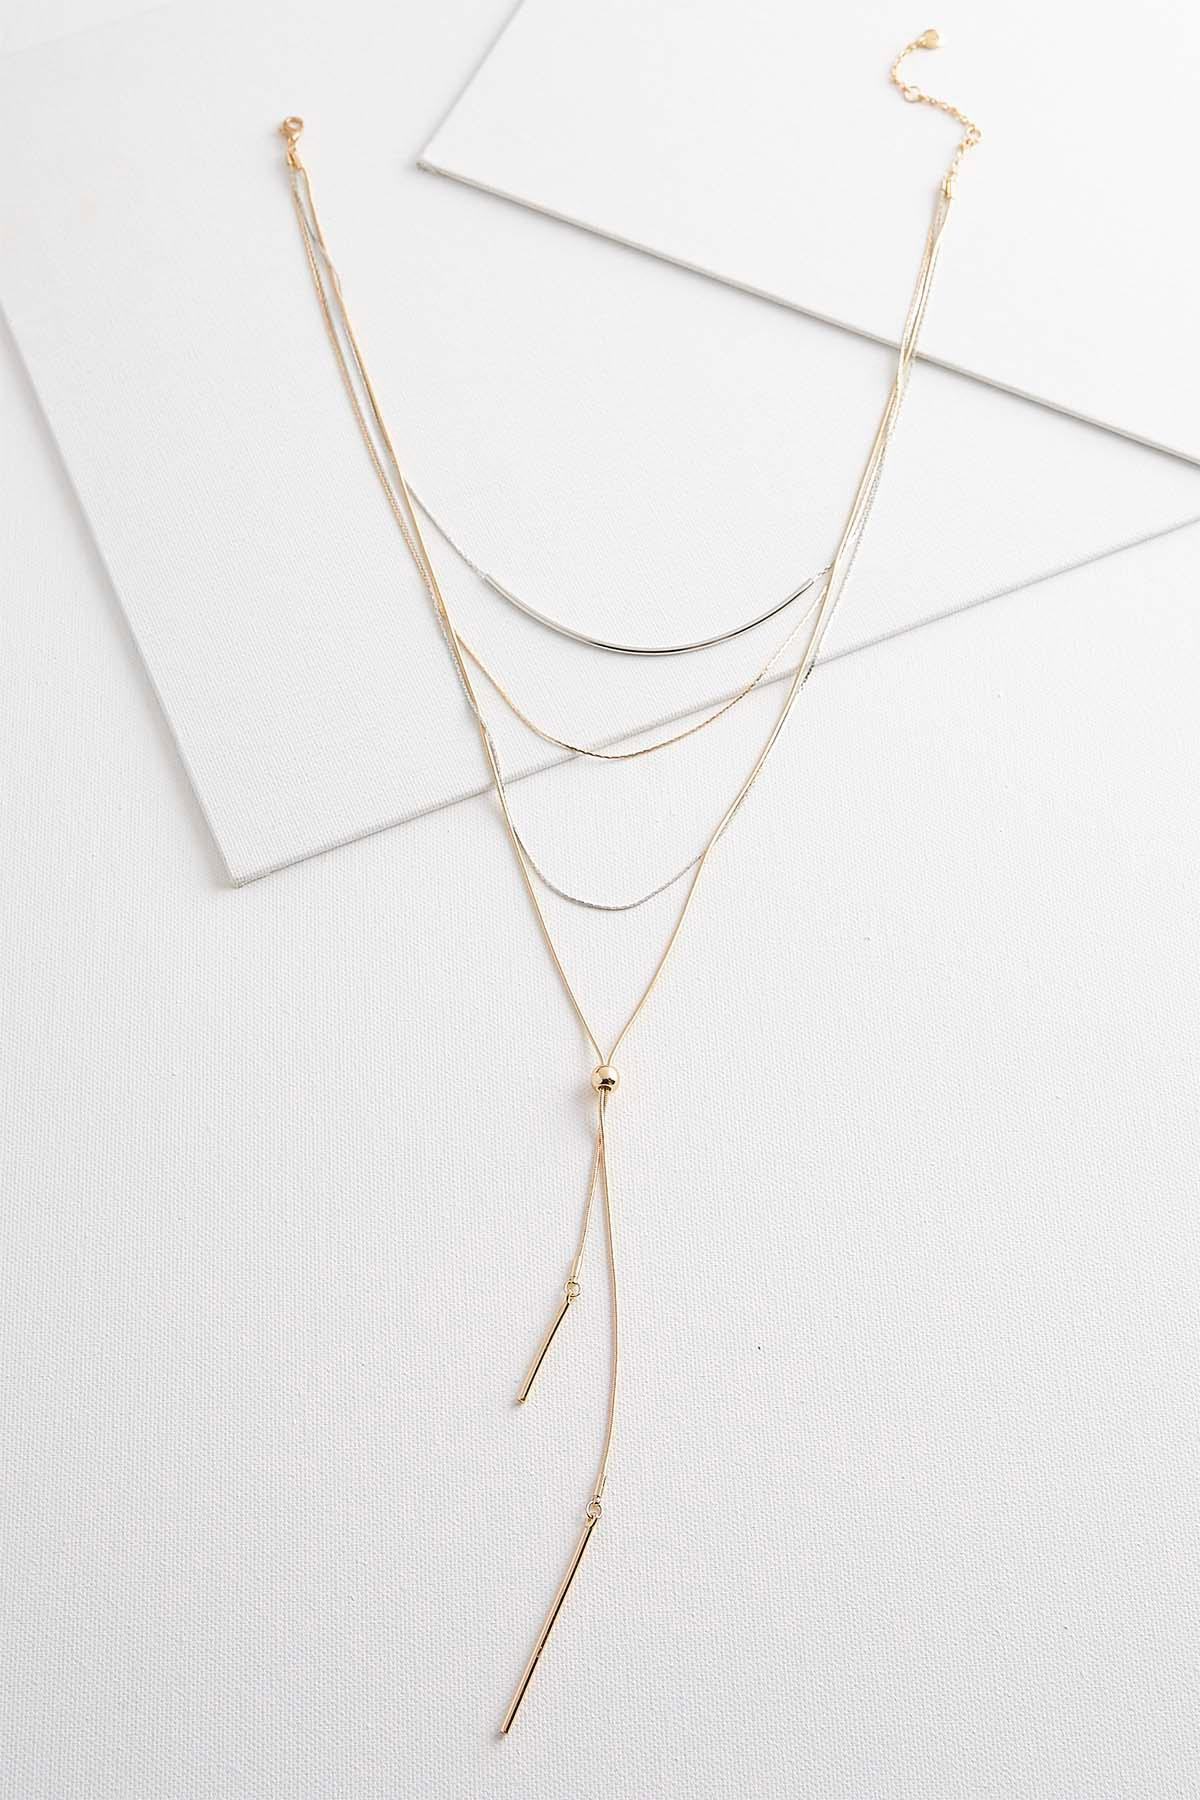 Two- Toned Layered Necklace